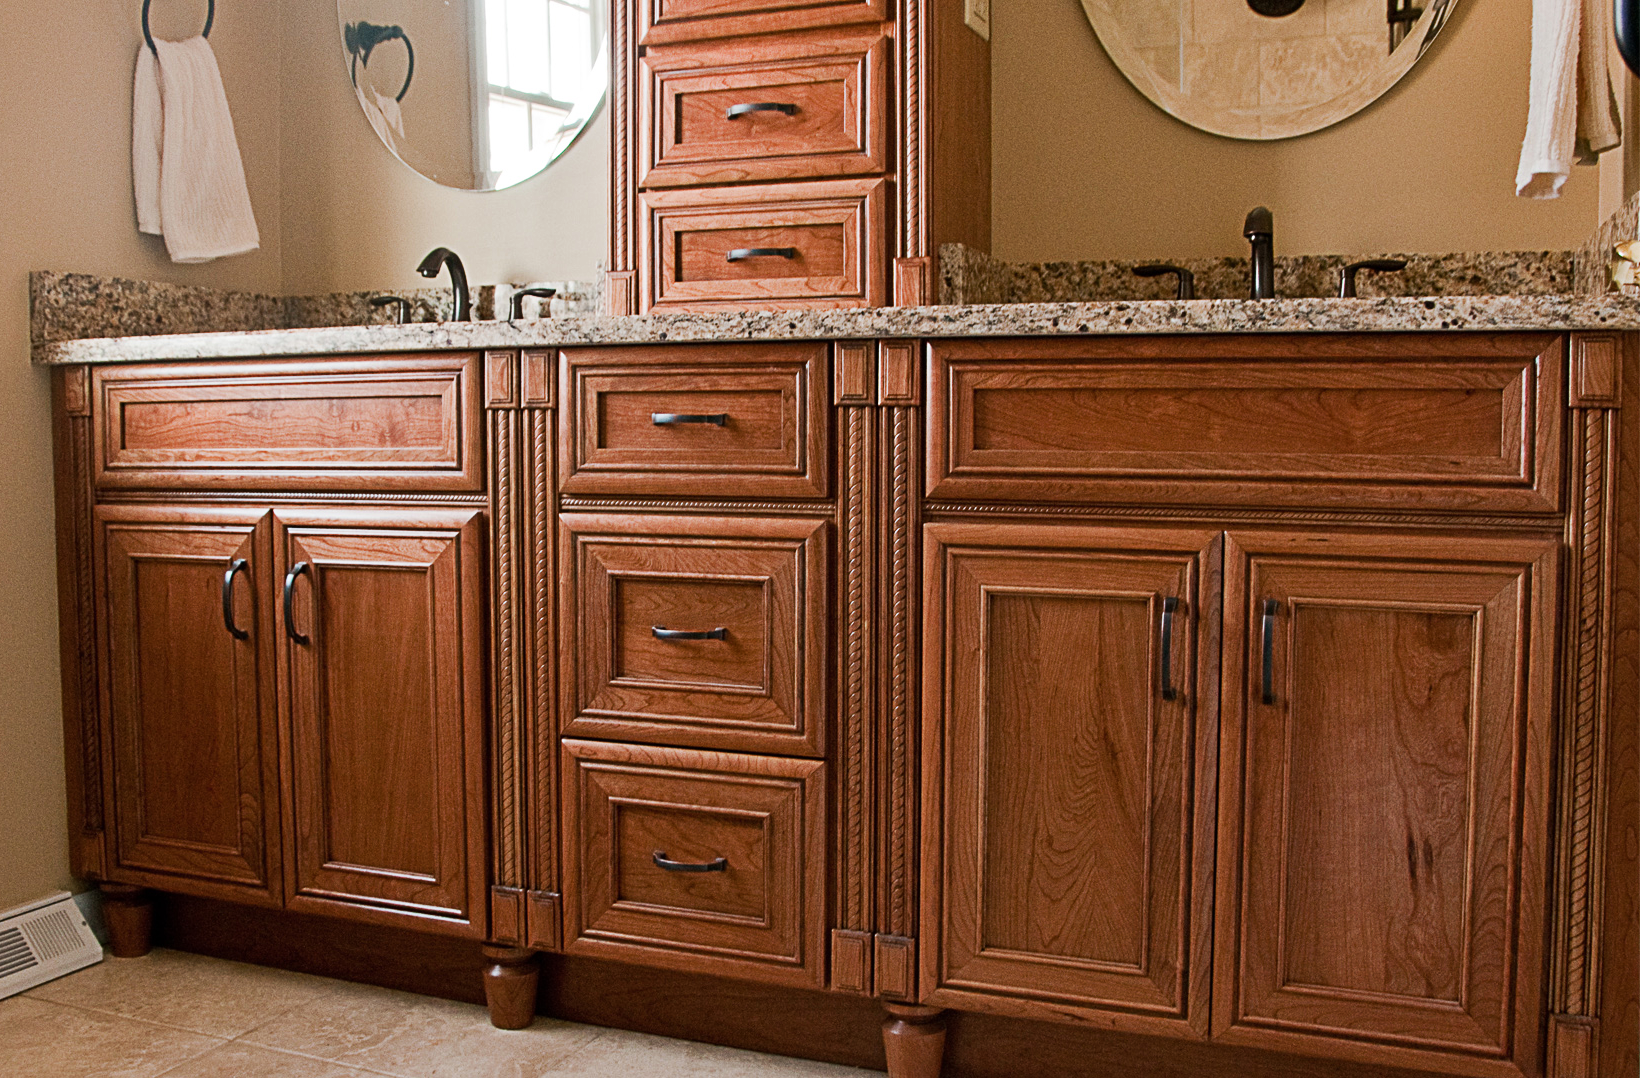 Bathroom Cabinets Tucson  AZ. Bathroom Remodeling Tucson AZ   FREE IN HOME ESTIMATES